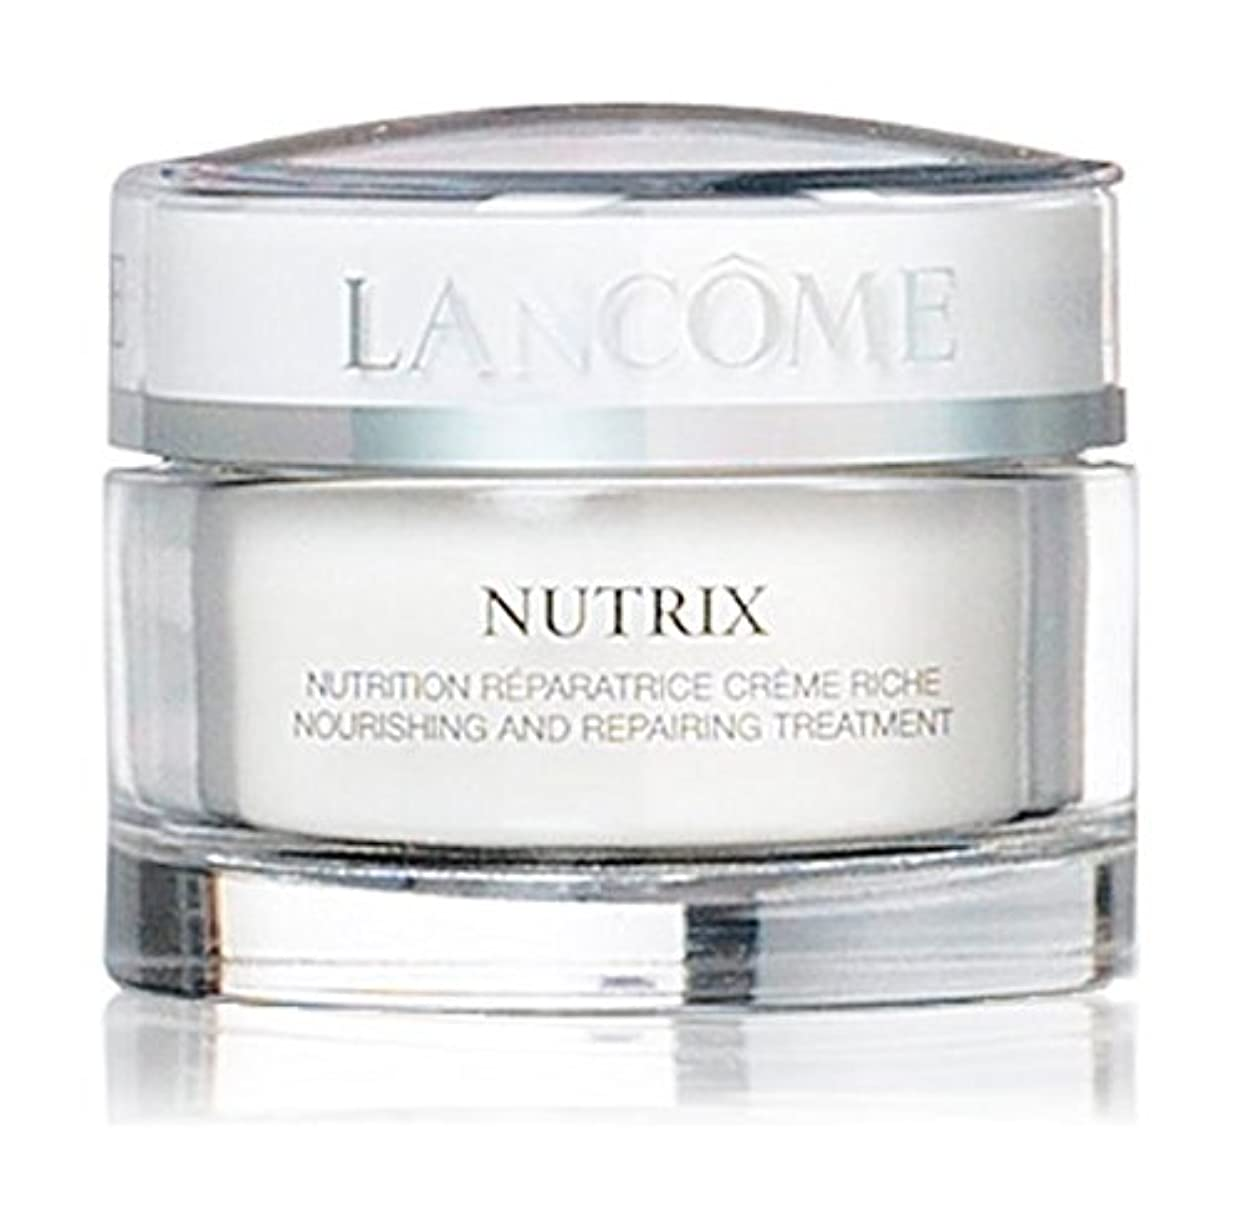 ファイバうれしい下に向けますランコム Nutrix Nourishing And Repairing Treatment Rich Cream - For Very Dry, Sensitive Or Irritated Skin 50ml/1.7oz...